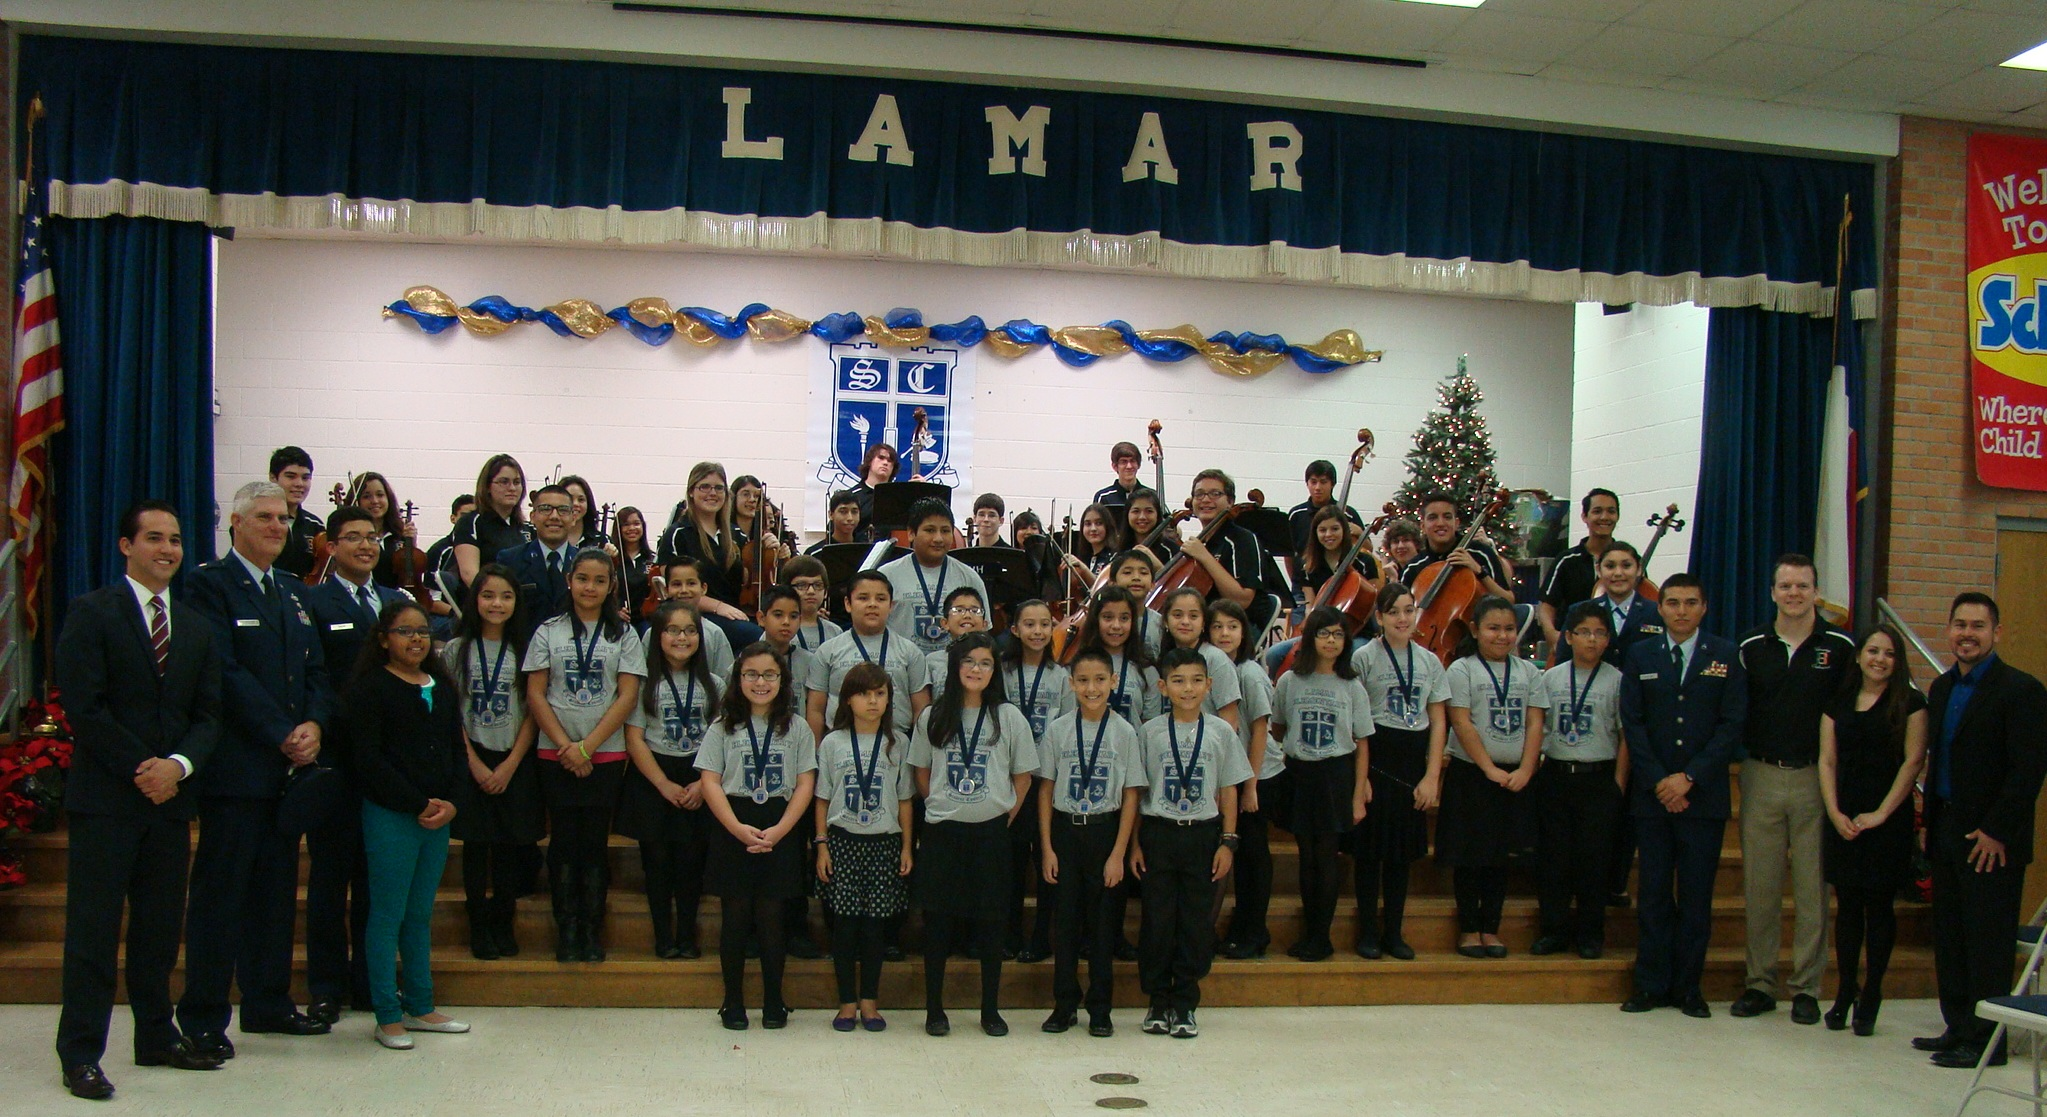 Lamar hosts ceremony for new Student Council members